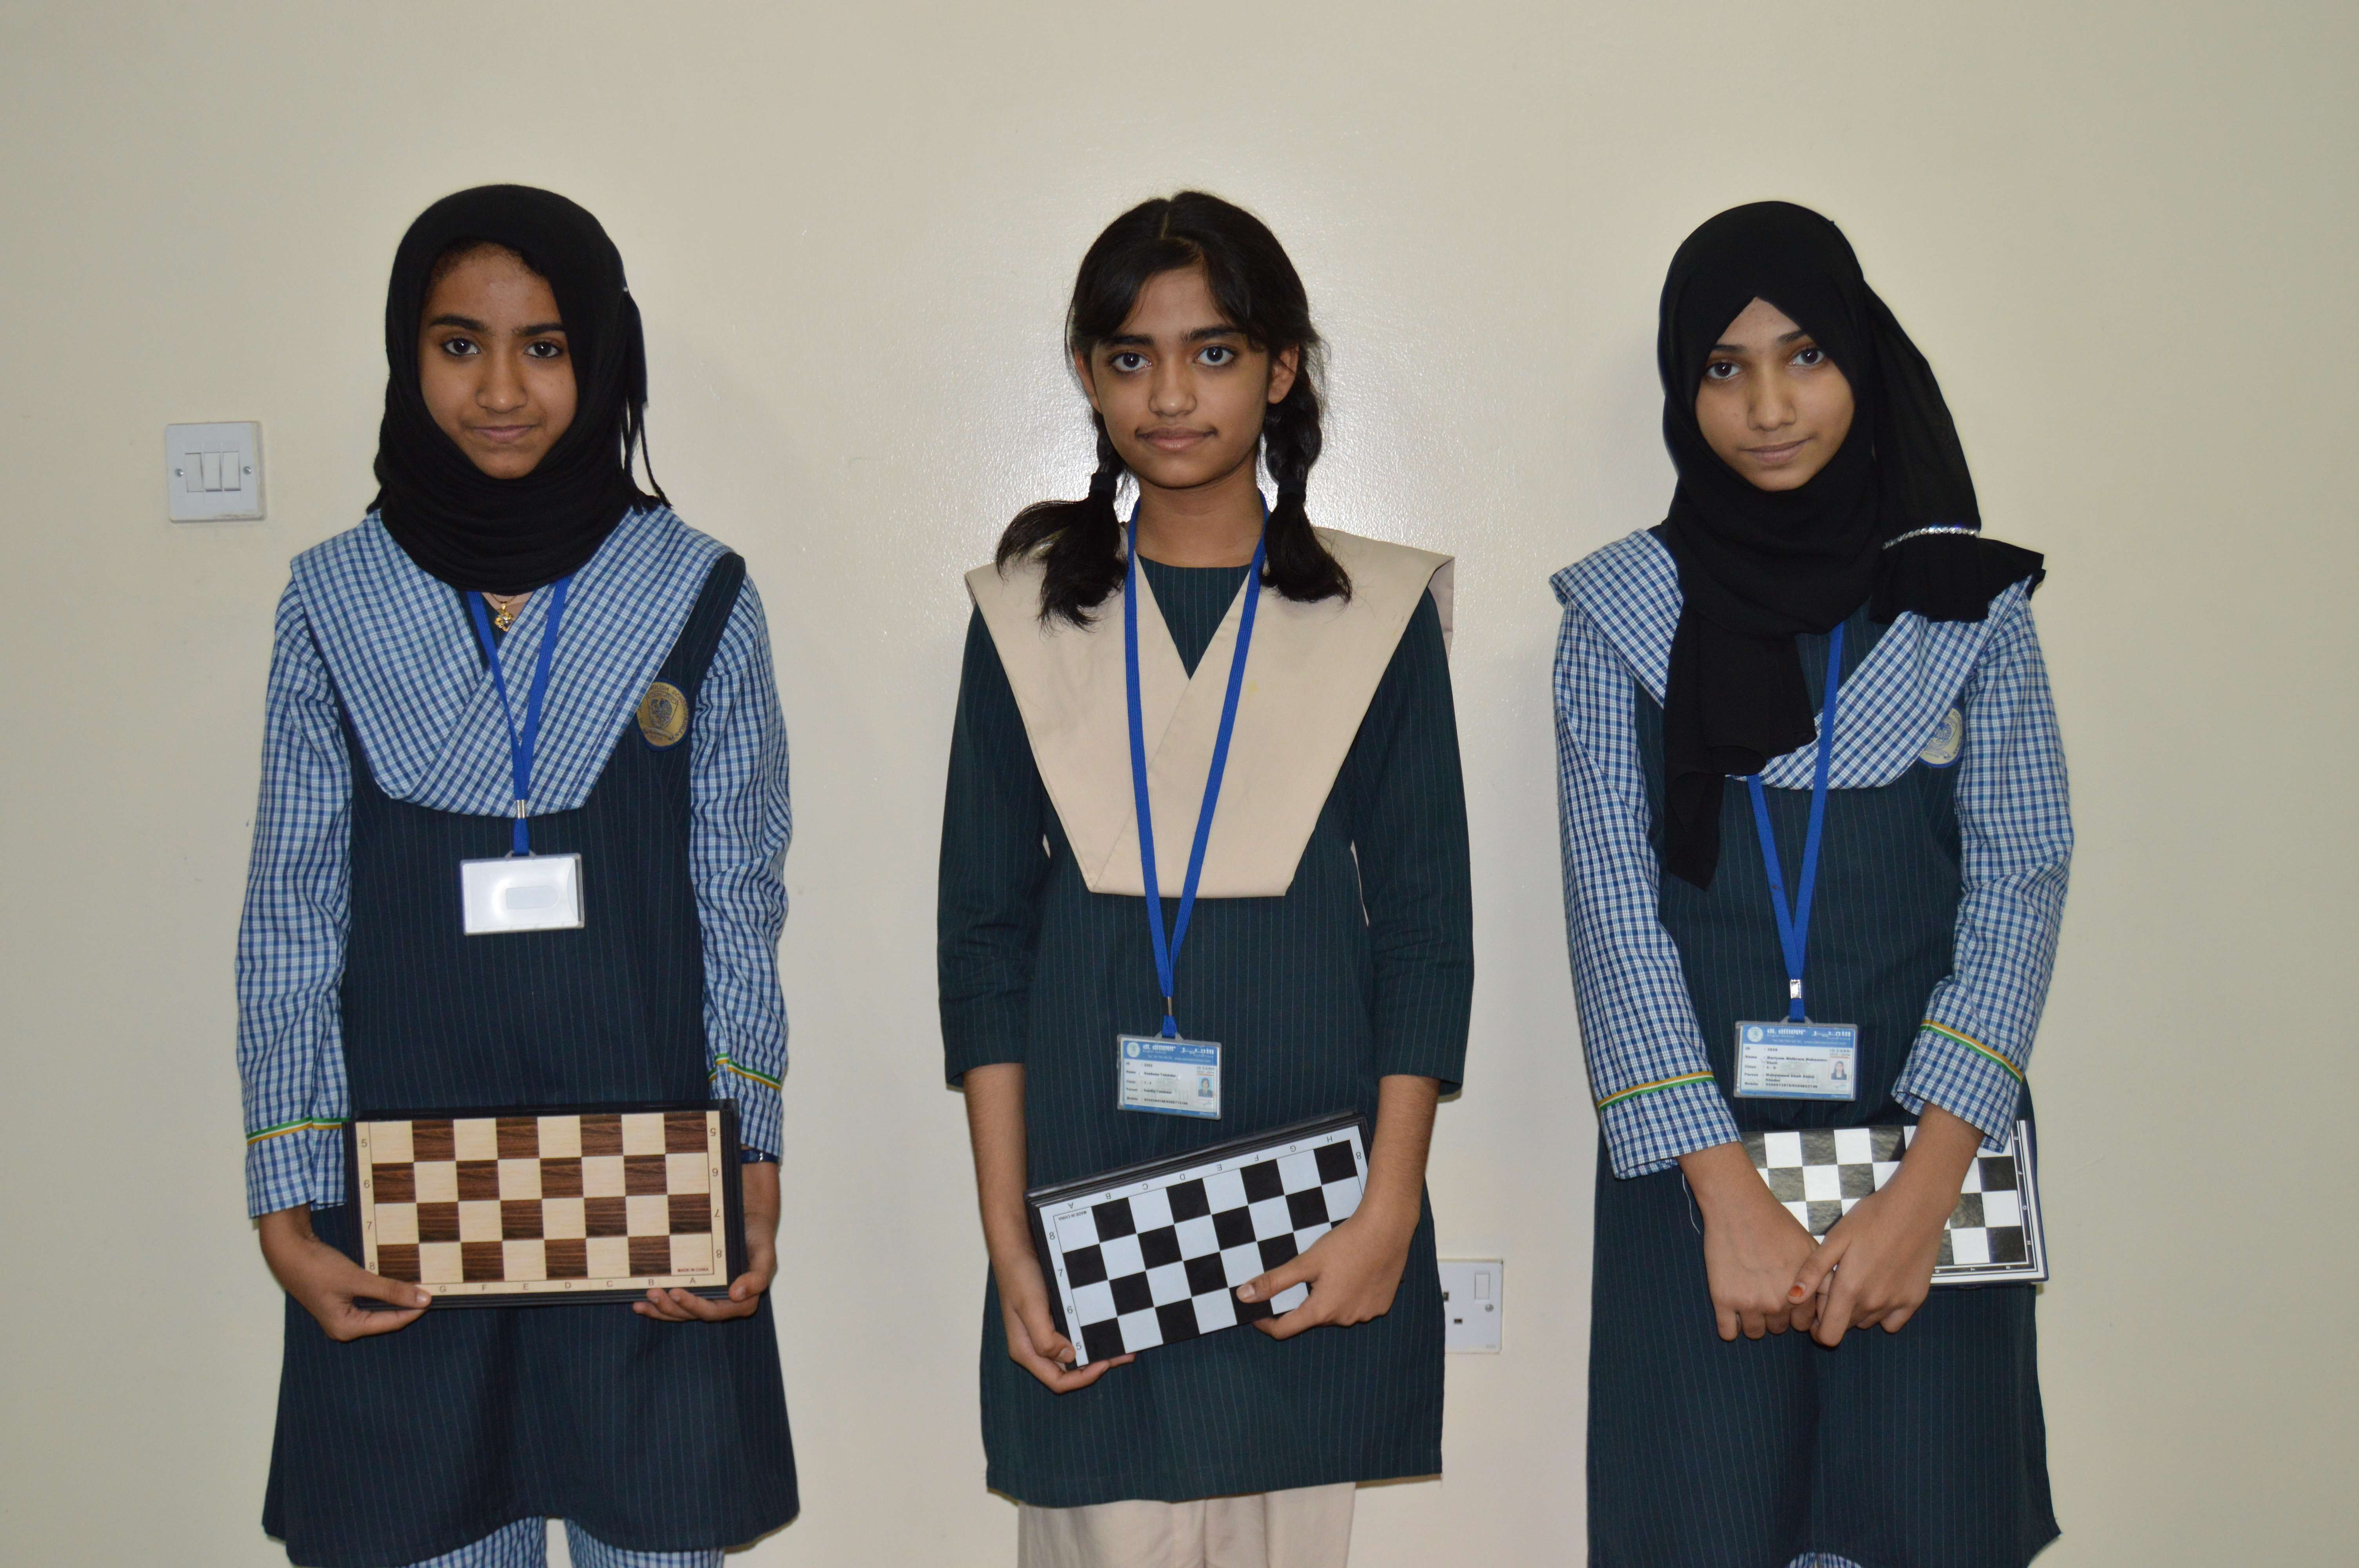 INTER HOUSE CHESS COMPETITION